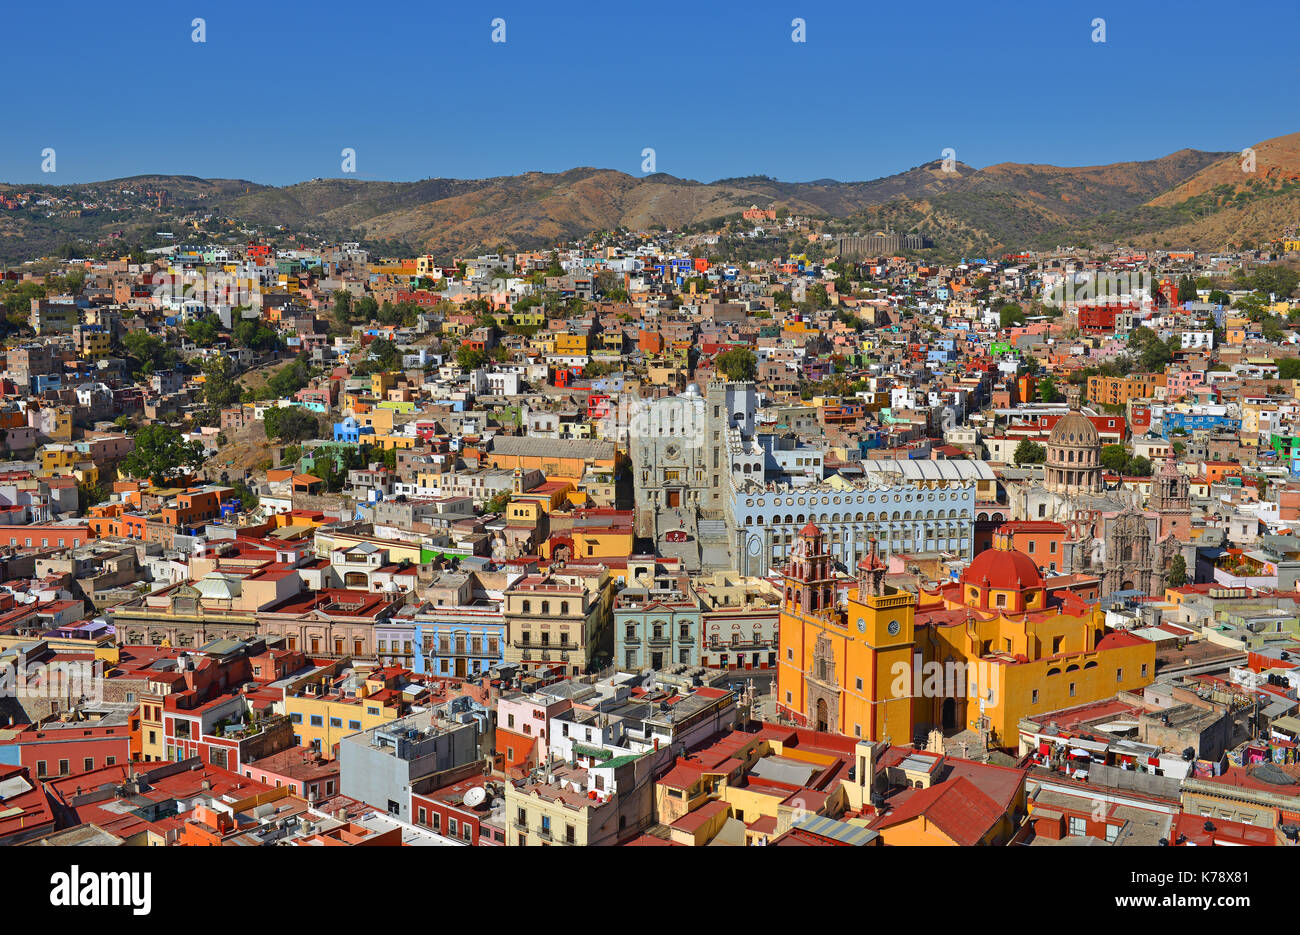 The colorful skyline of Guanajuato city during daytime with its beautiful Basilica of Our Lady with orange colours, Mexico. - Stock Image